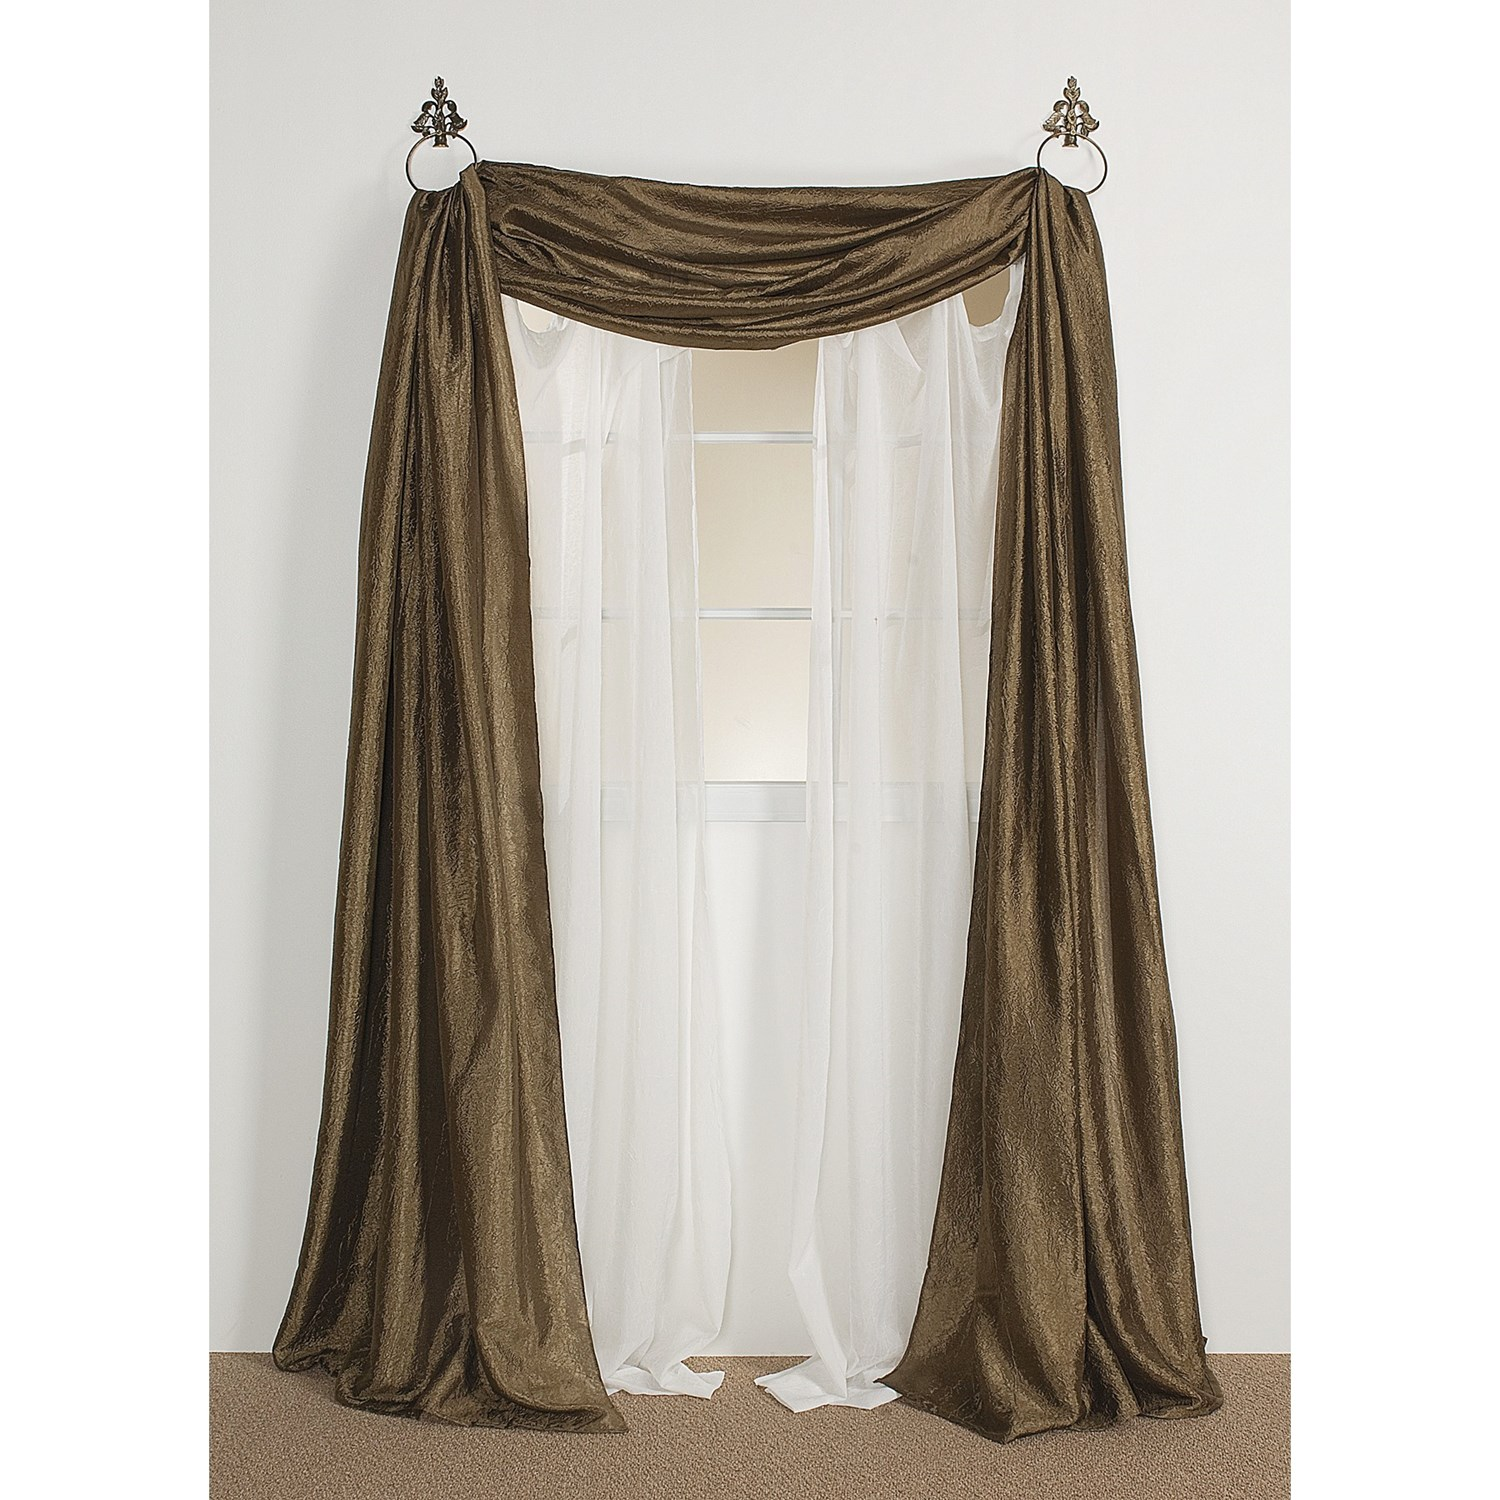 how to hang scarf curtains pictures